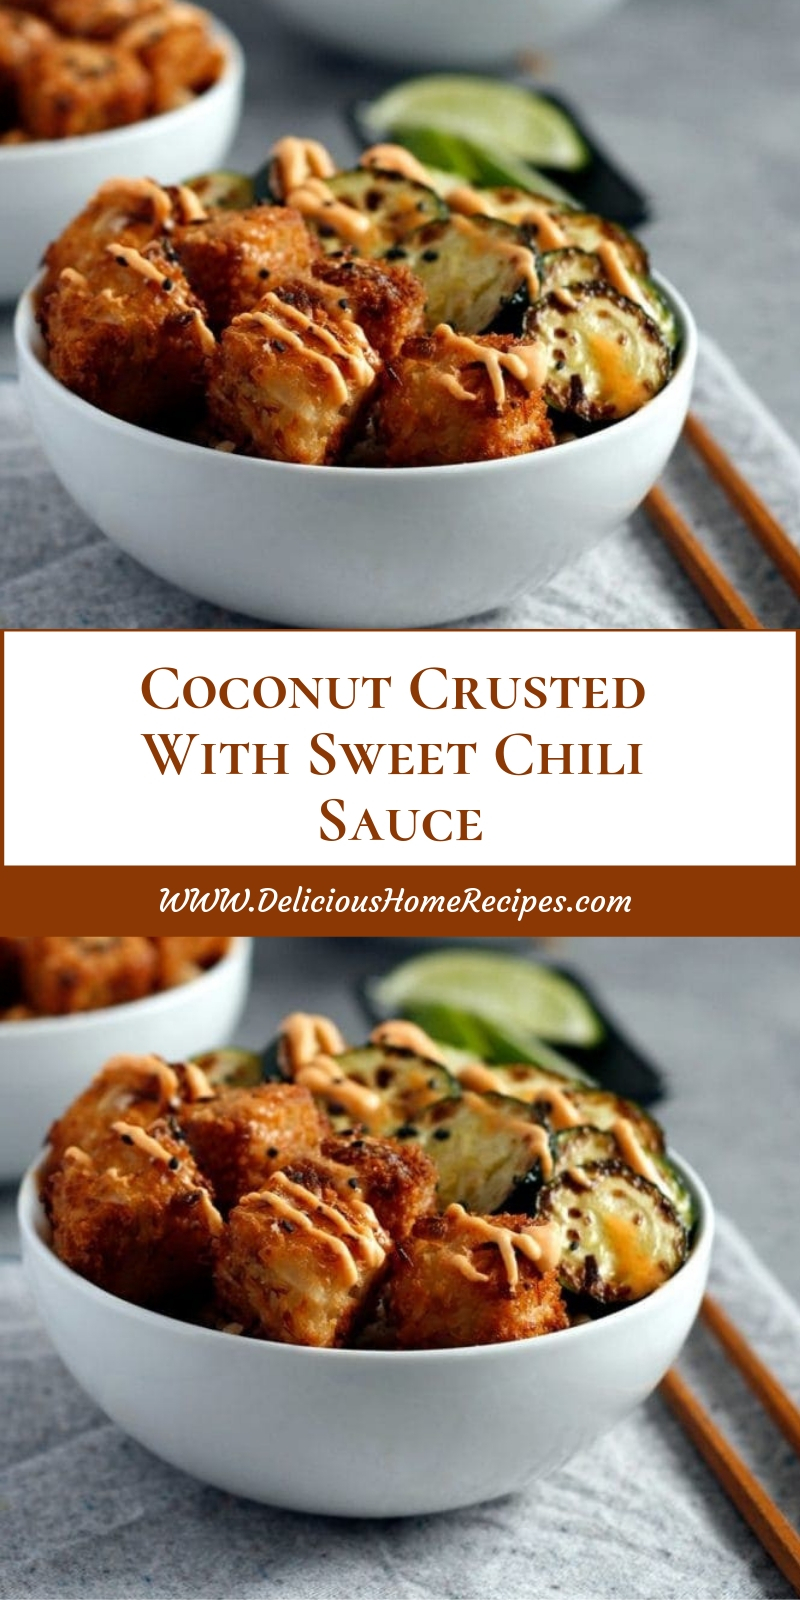 Coconut Crusted With Sweet Chili Sauce